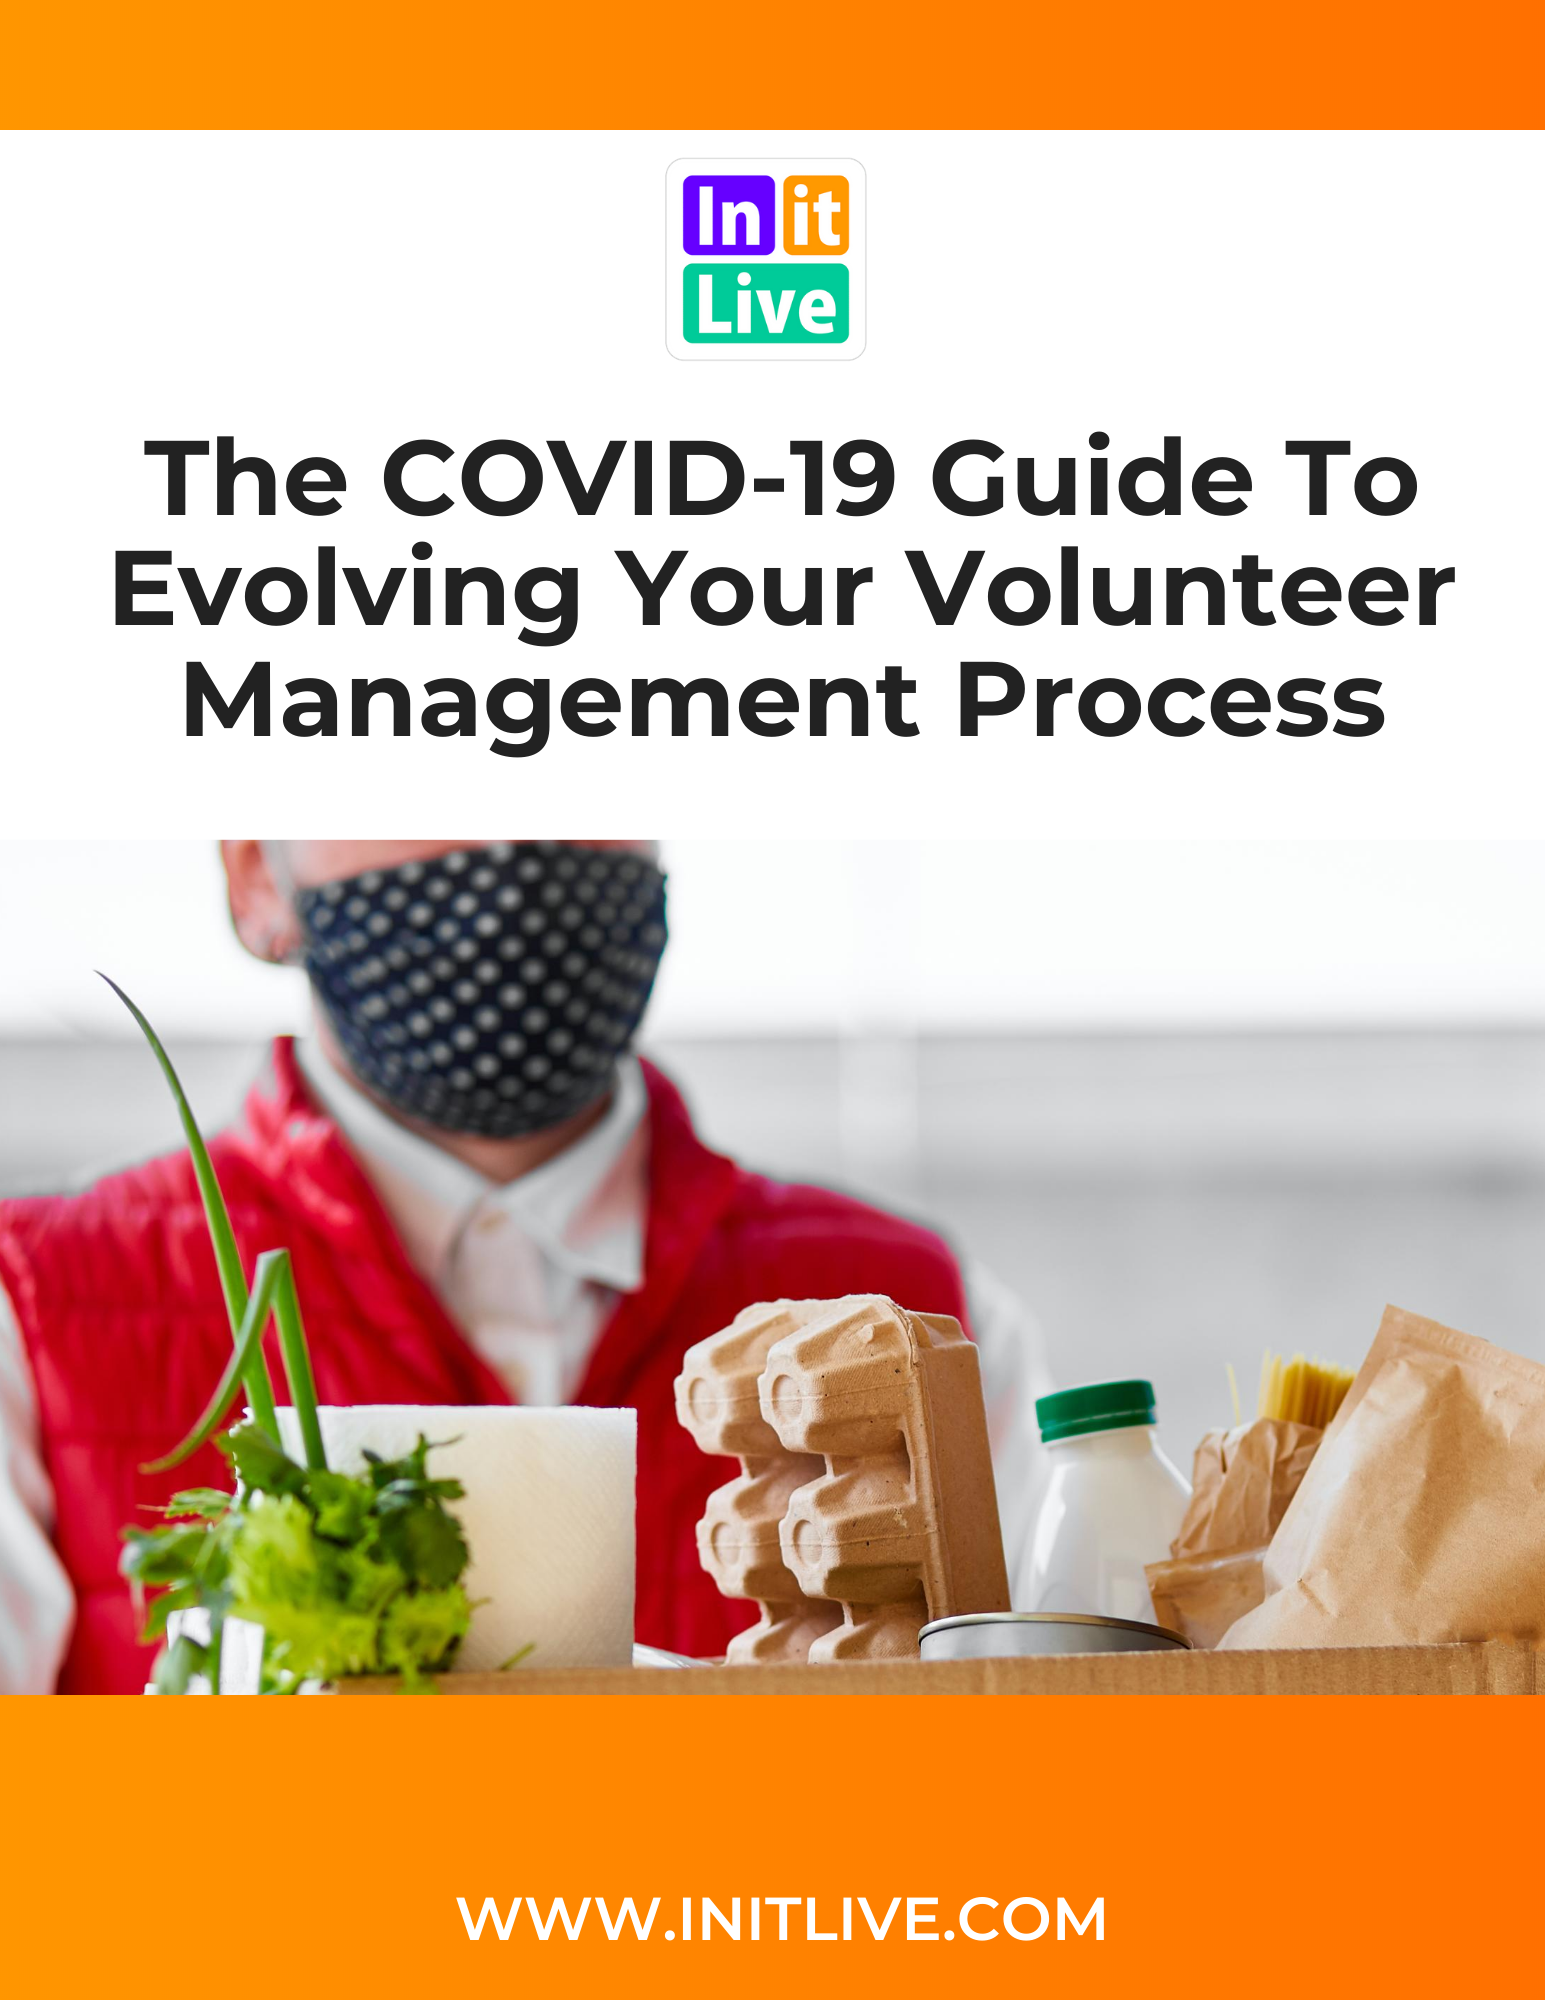 The COVID-19 Guide To Evolving Your Volunteer Management Process (3)